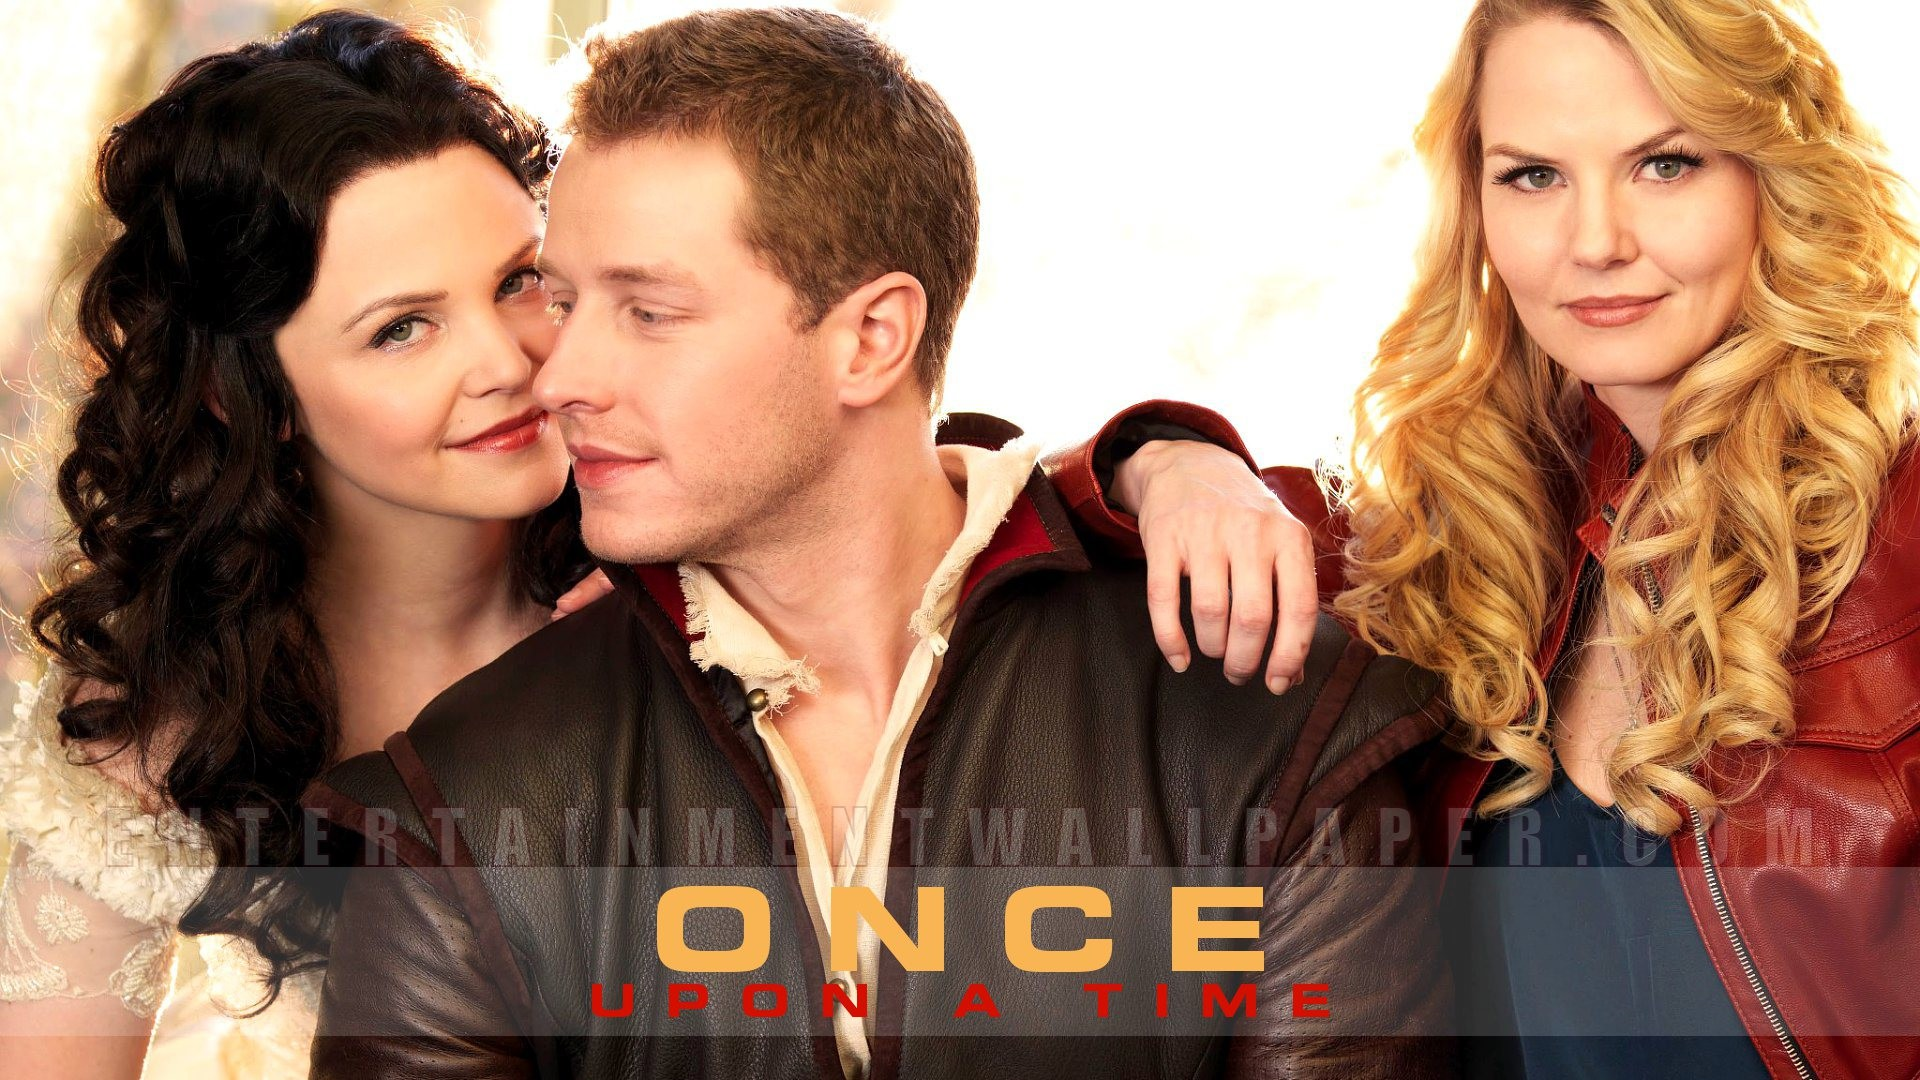 Once Upon a Time Wallpaper – Original size, download now.